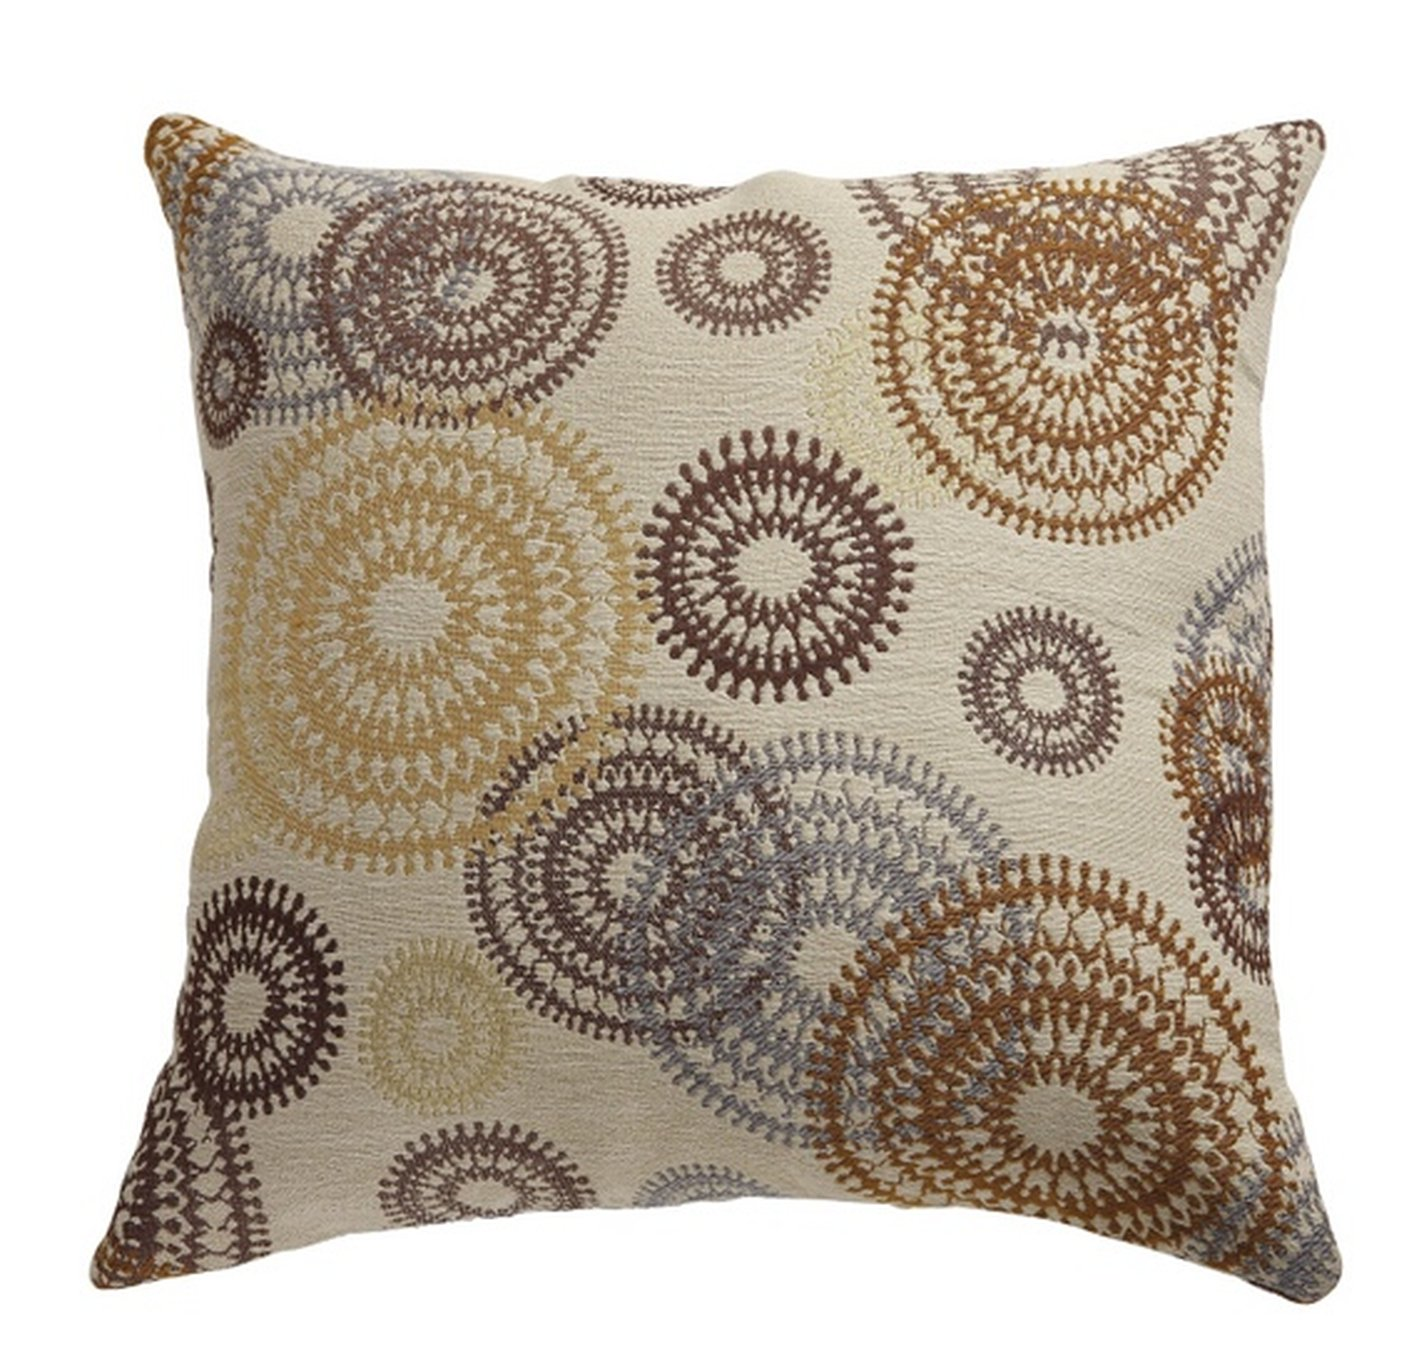 Beige fabric accent pillow steal a sofa furniture outlet - Fabric for throw pillows ...